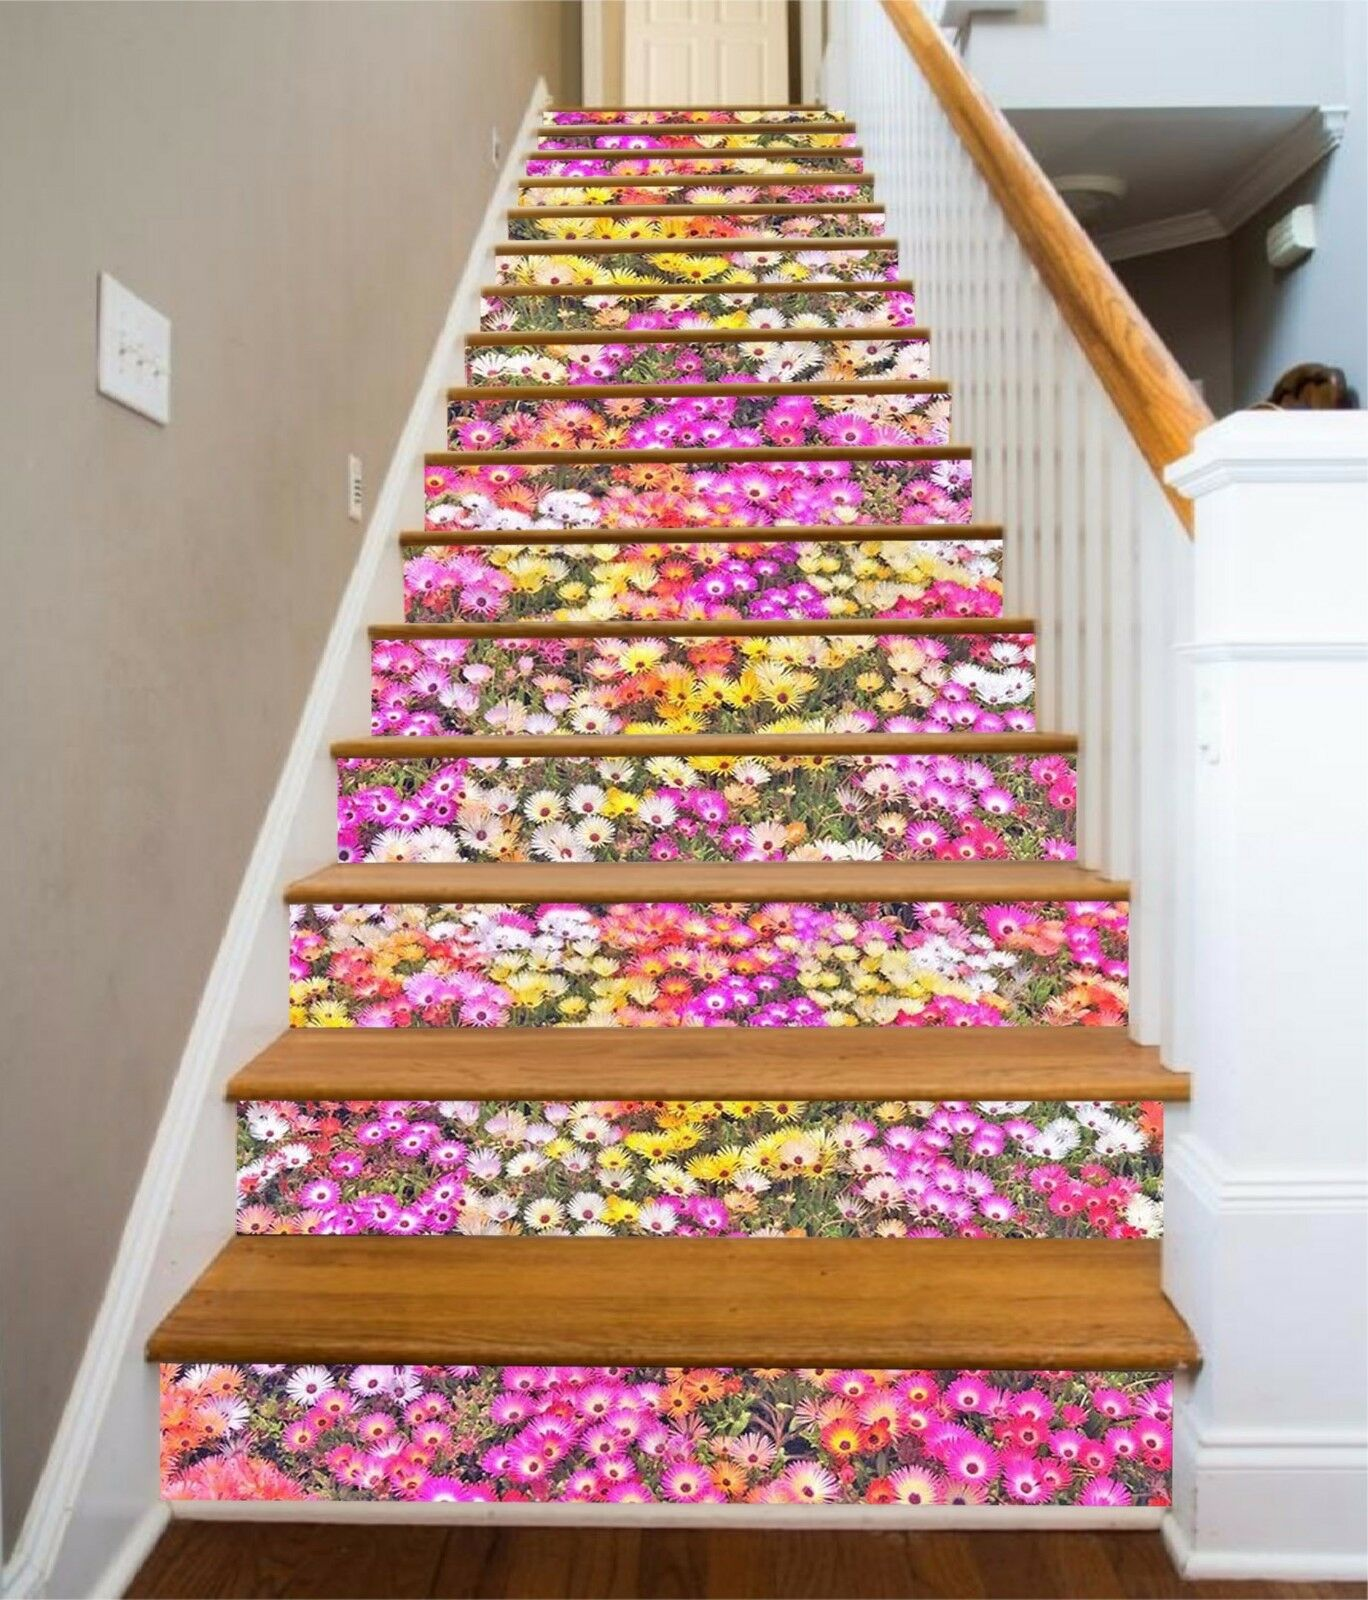 3D Couleur Flowers 33 Stair Risers Decoration Photo Mural Vinyl Decal Wallpaper AU